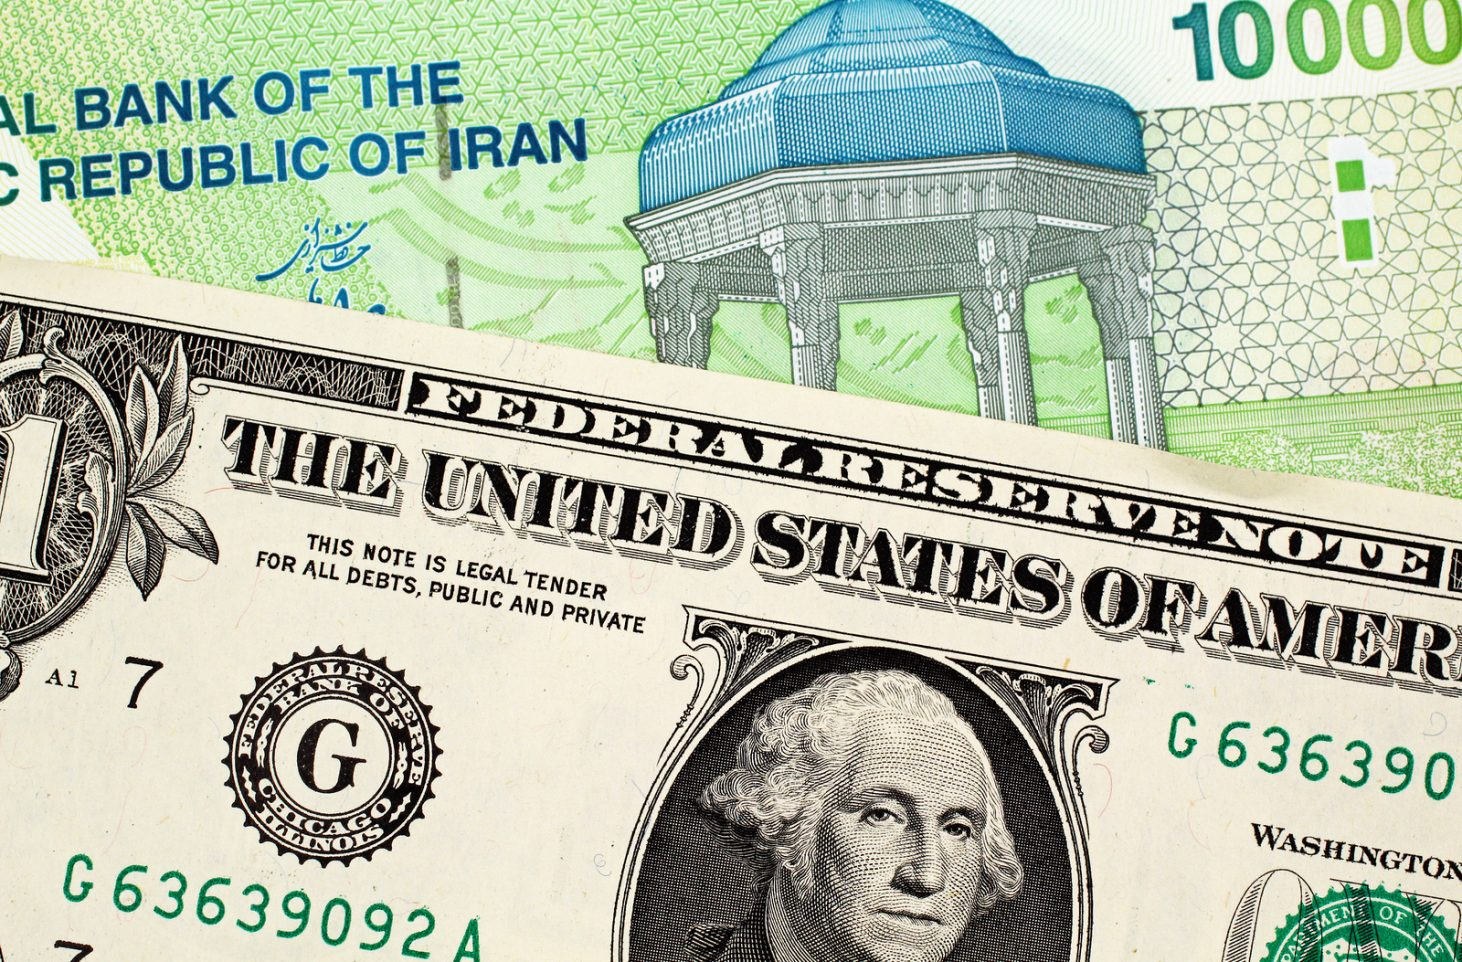 A Green 10000 Iranian Rial Note With An American One Dollar Bill